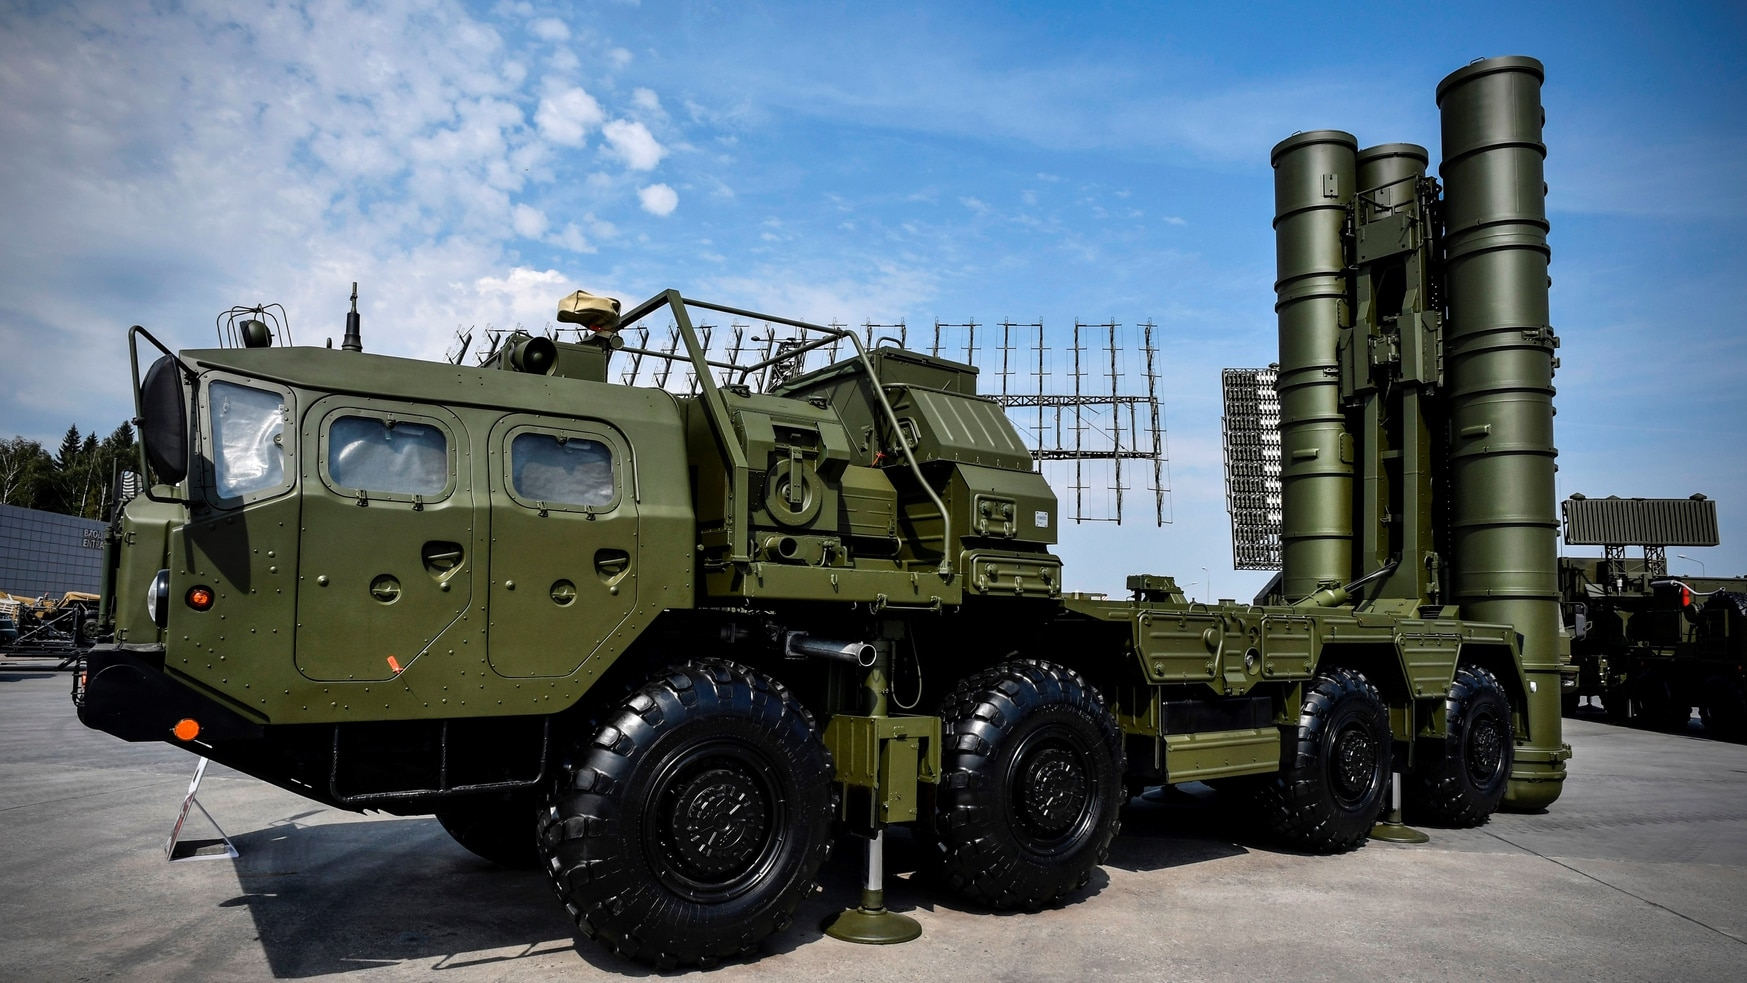 Russian S-400 air defense system, on display in 2017, is at the heart of a split between the U.S. and its NATO ally Turkey. (ALEXANDER NEMENOV/AFP via Getty Images)